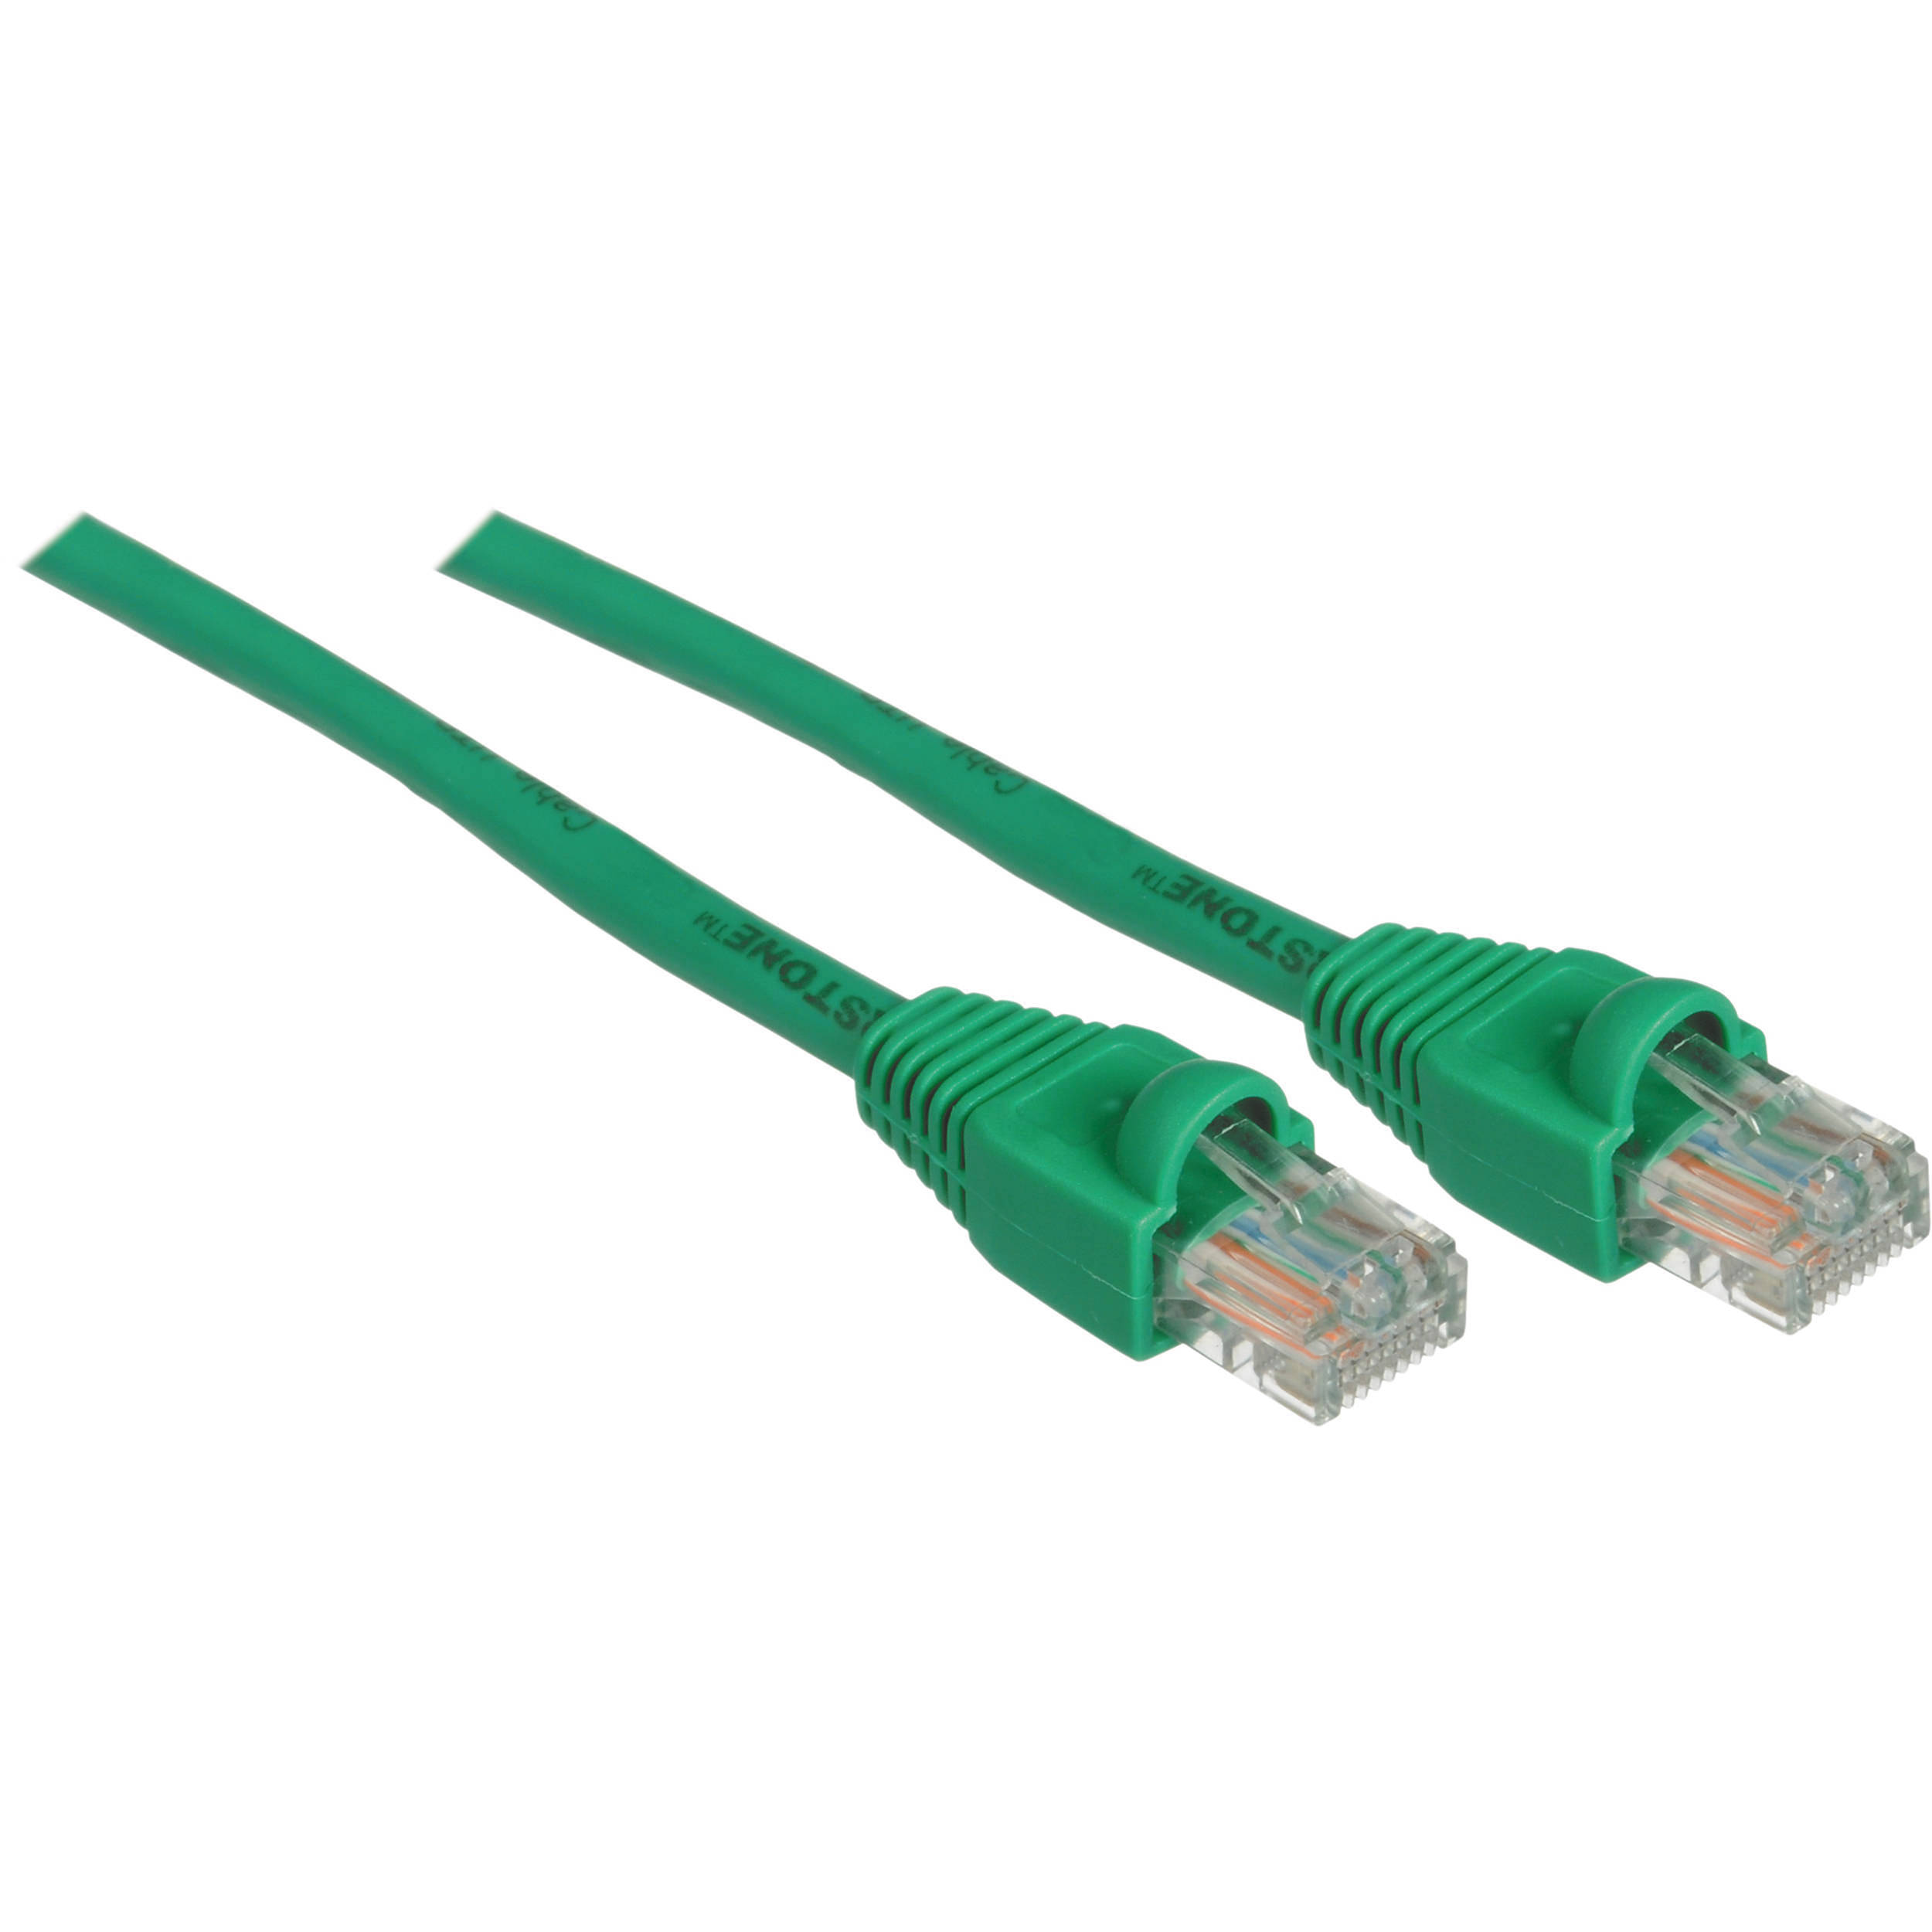 Pearstone 10' Cat6 Snagless Patch Cable (Green) CAT6-10GR B&H Cat 10 Cable